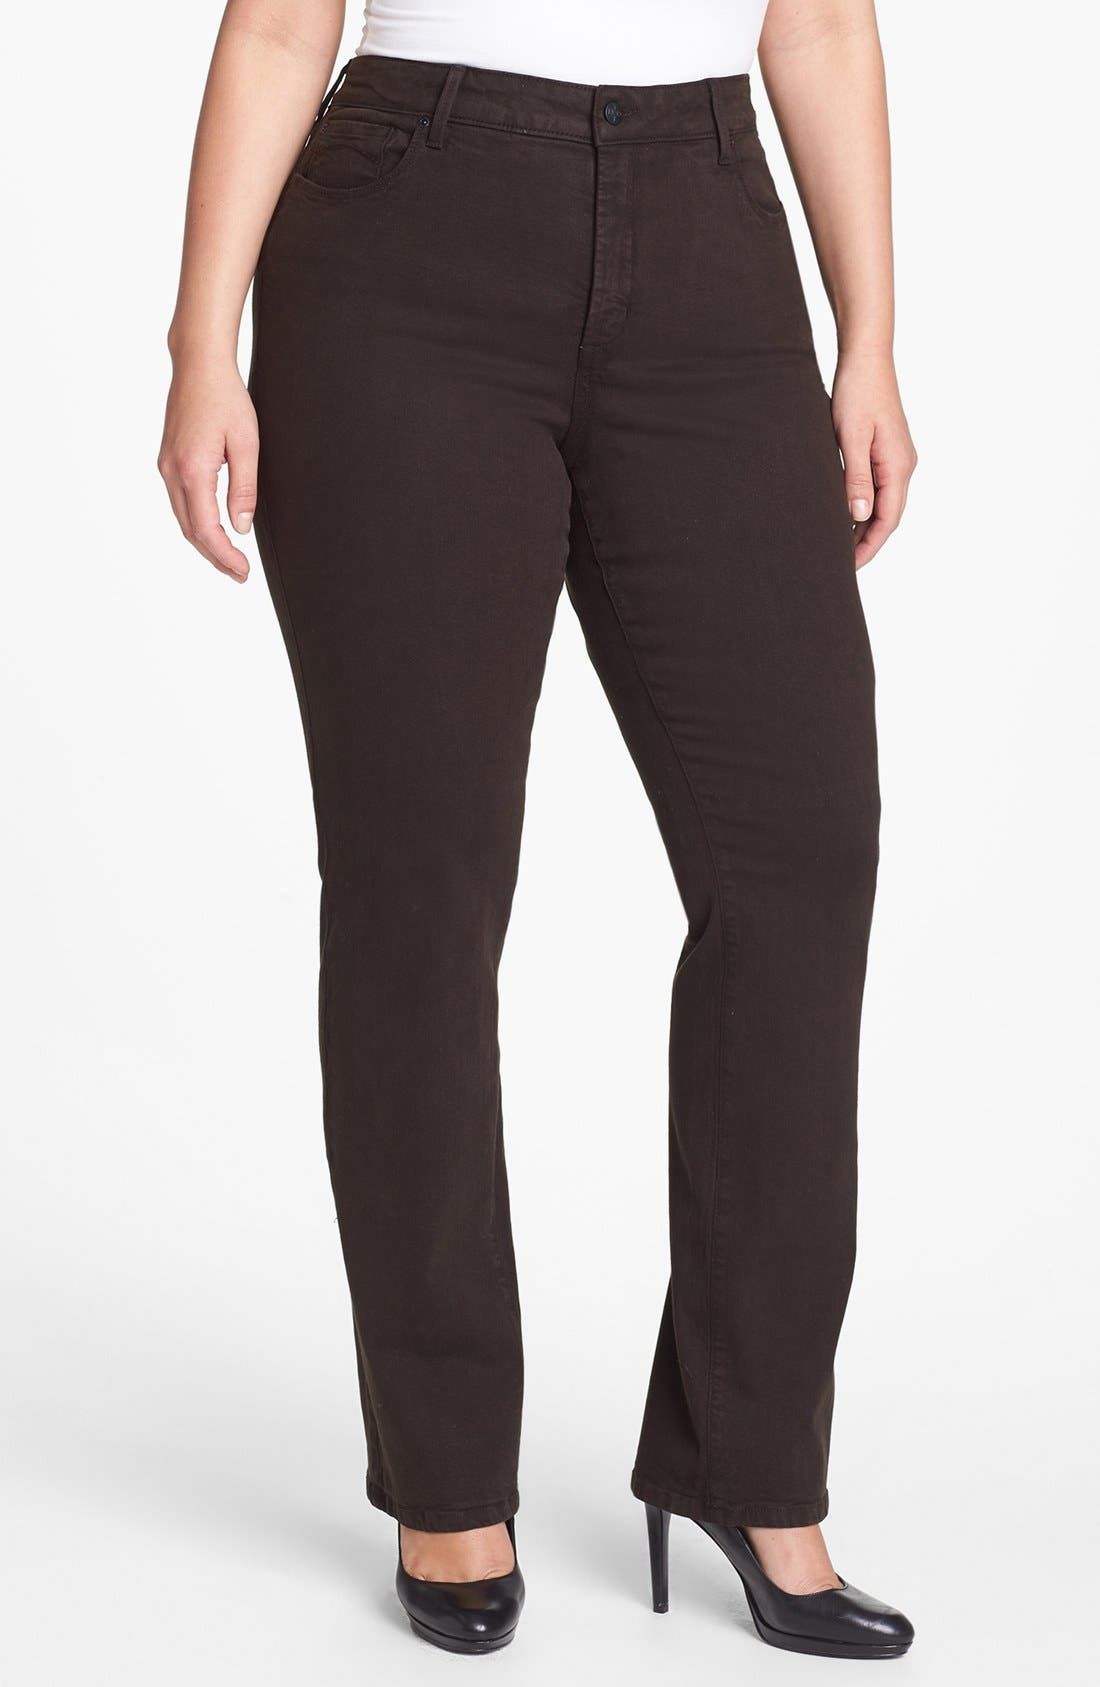 Alternate Image 1 Selected - NYDJ 'Marilyn' Colored Stretch Straight Jeans (Plus Size)